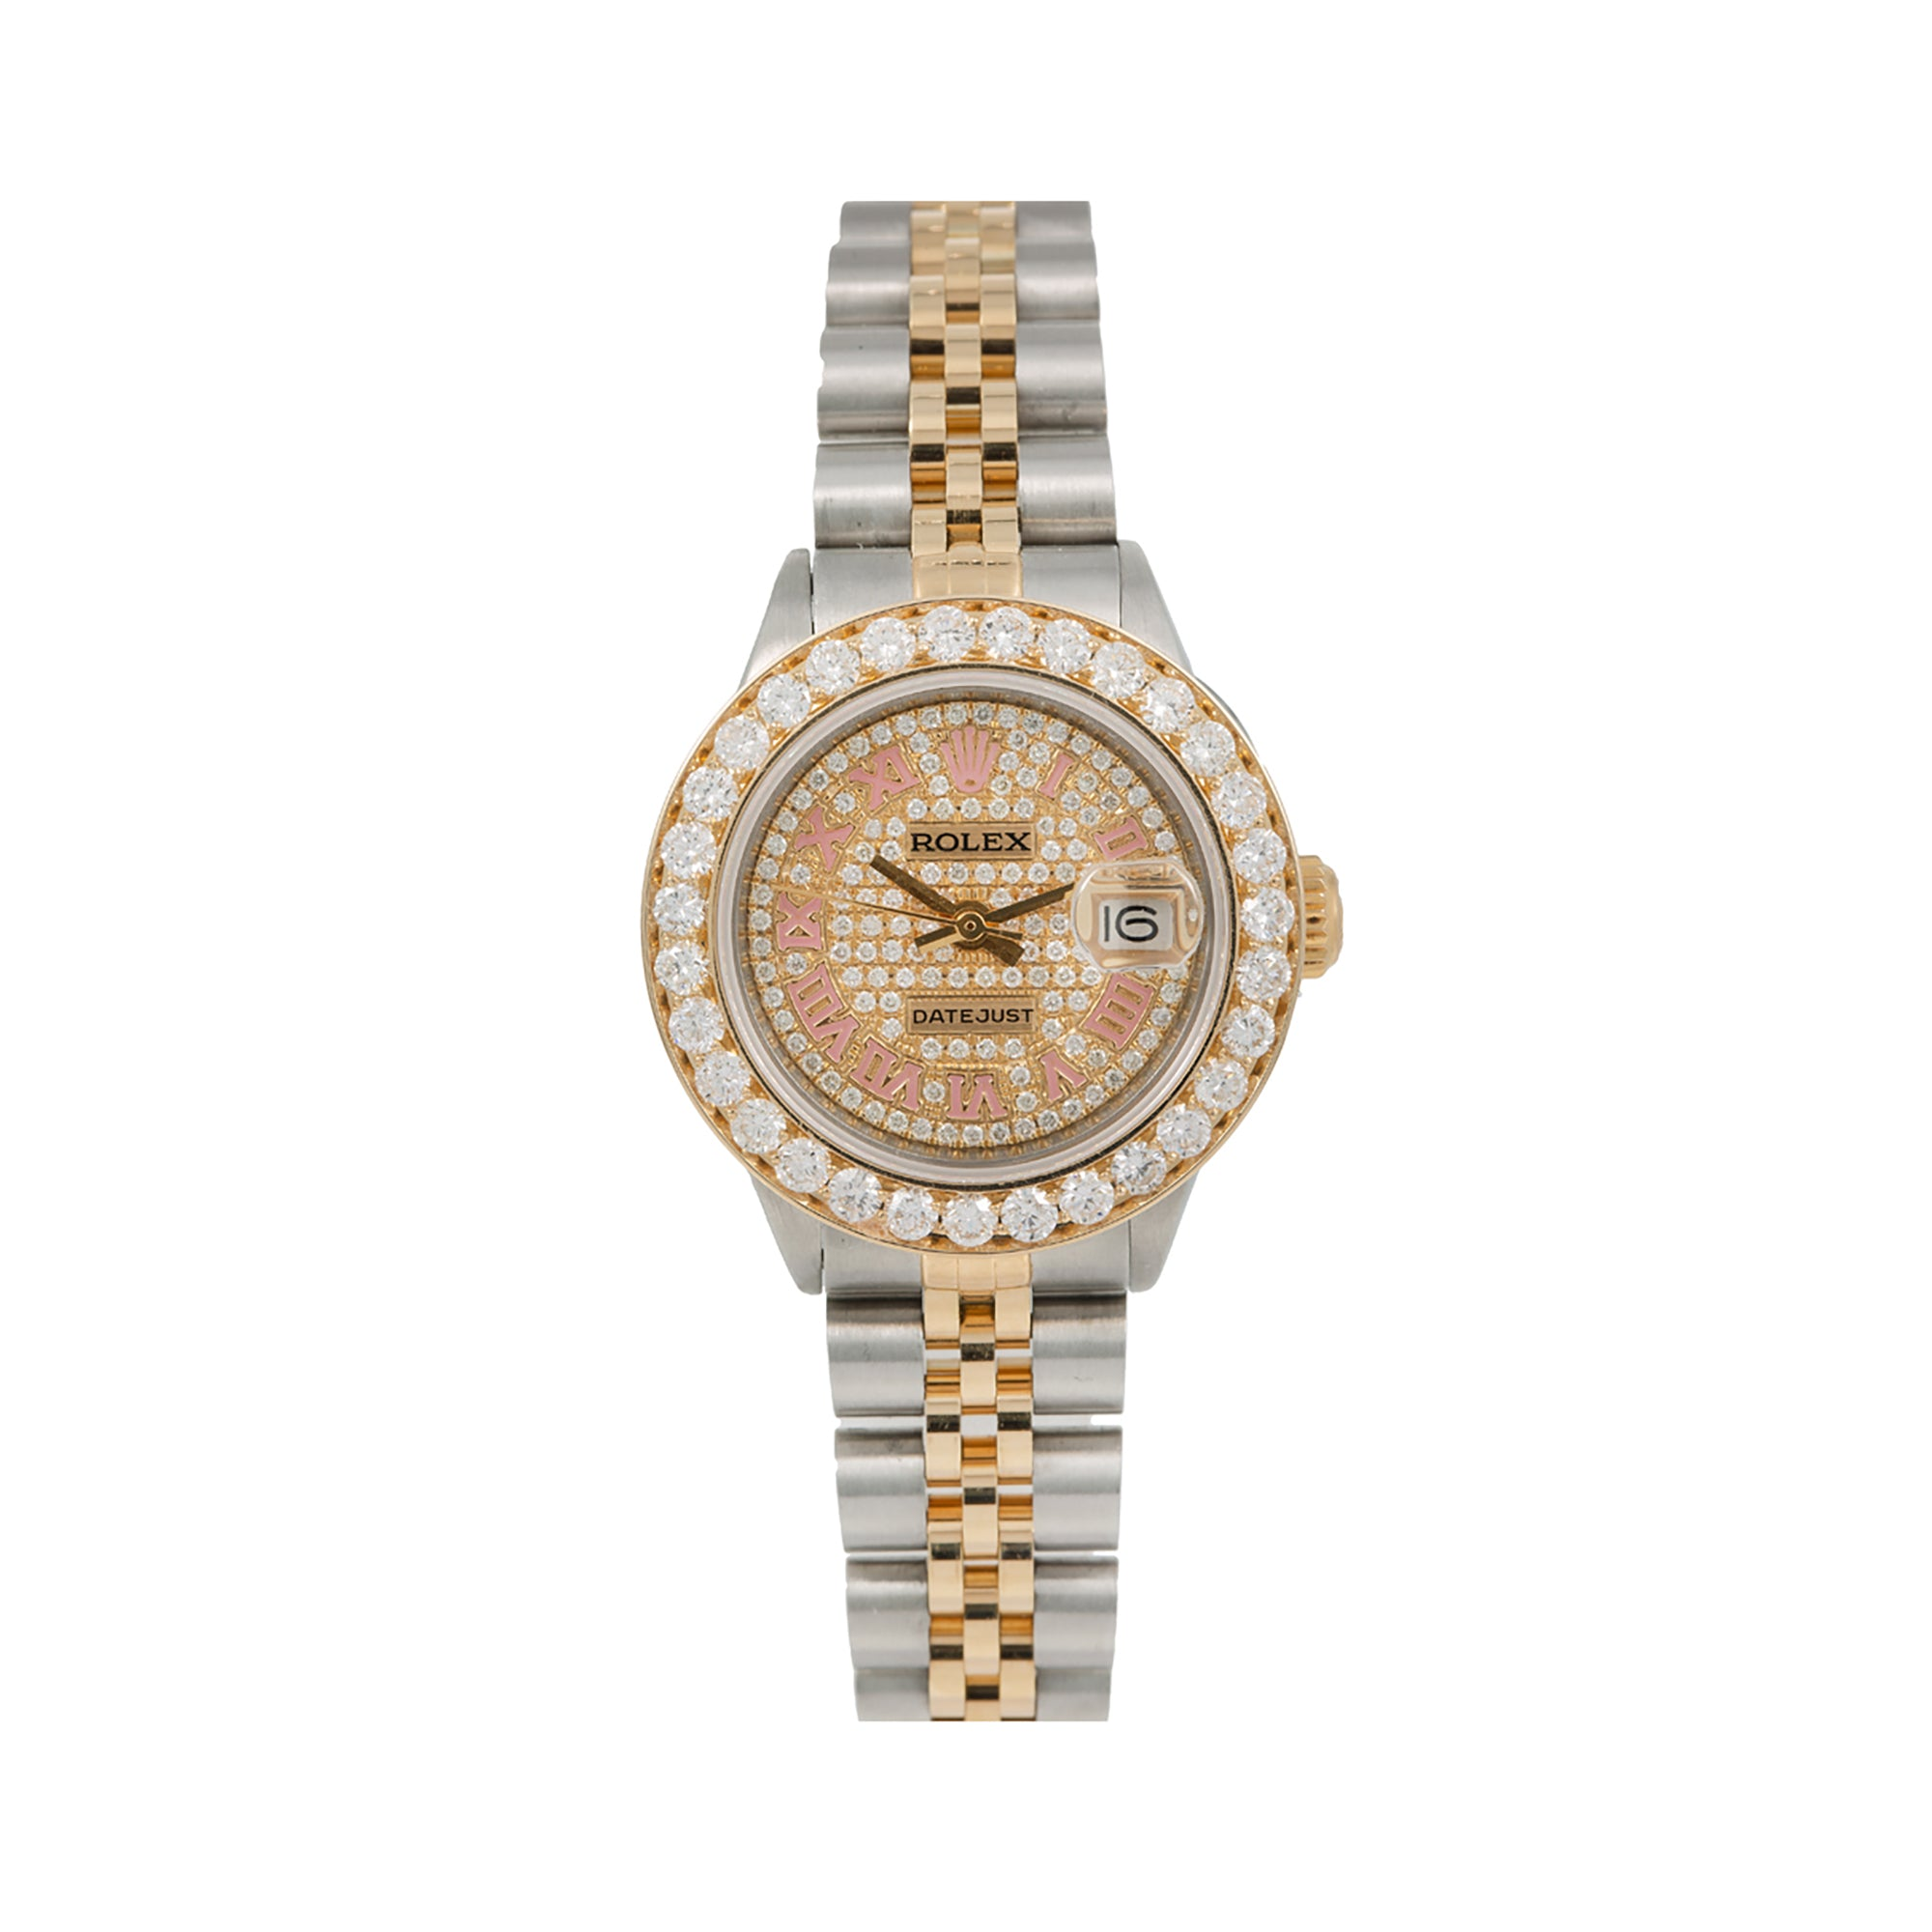 Rolex Datejust 6917 26MM Champagne Diamond Dial With 3.45 CT Diamonds